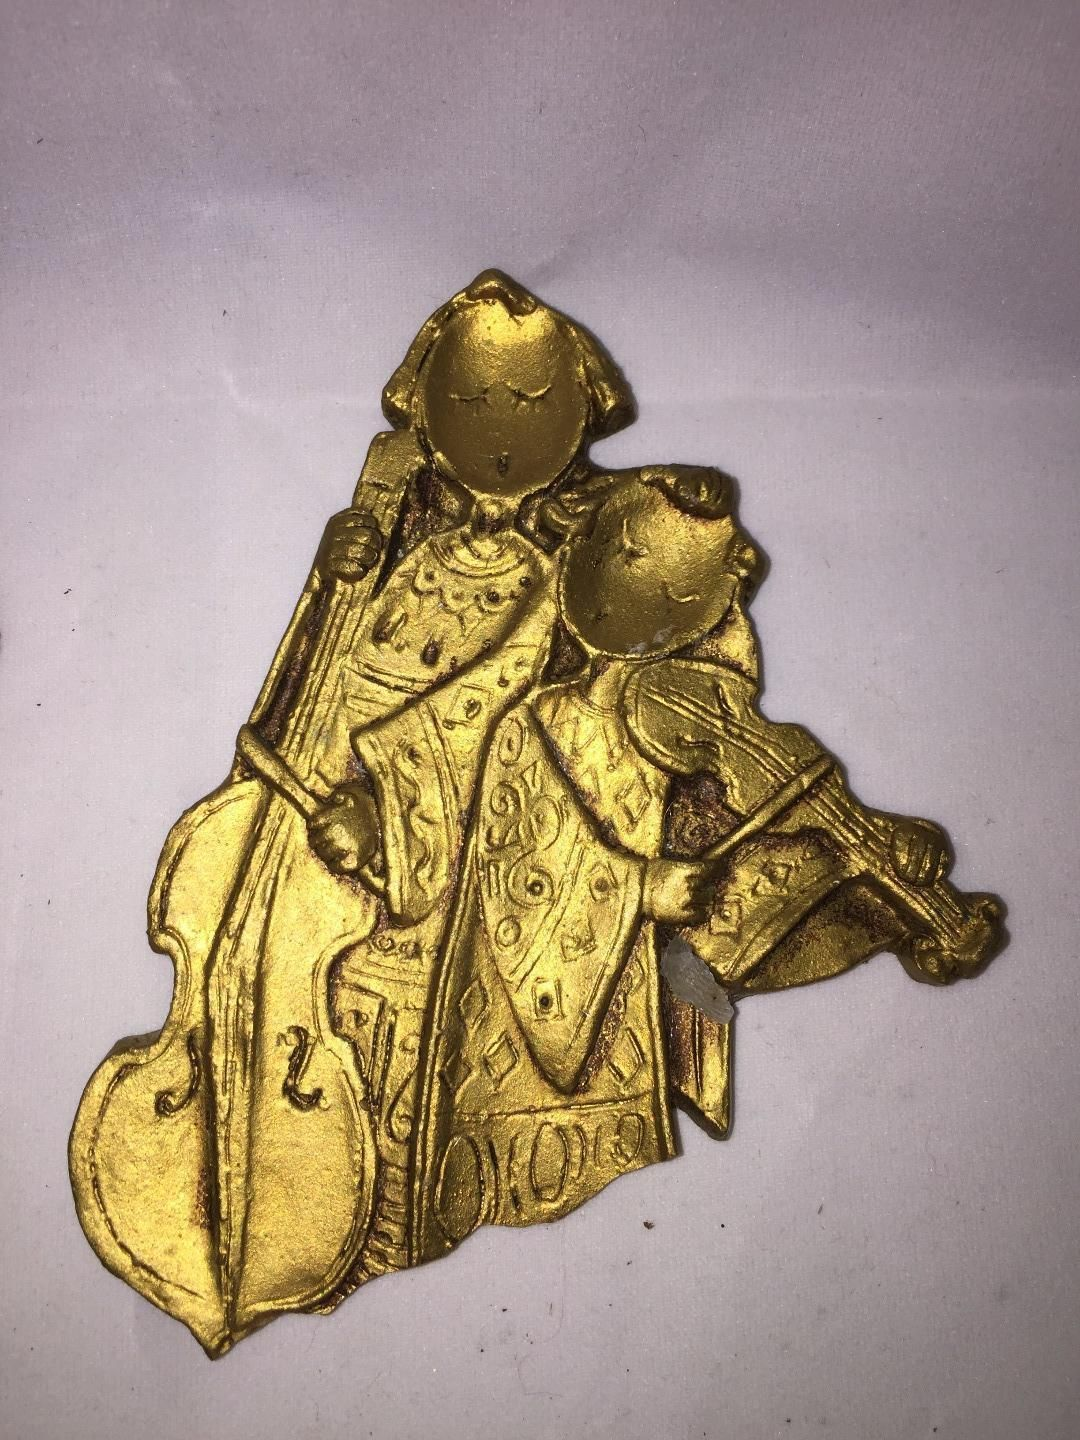 Violin christmas ornaments - Vintage Angel Christmas Ornaments Made In Italy Gold Gilt Musical Playing Instruments